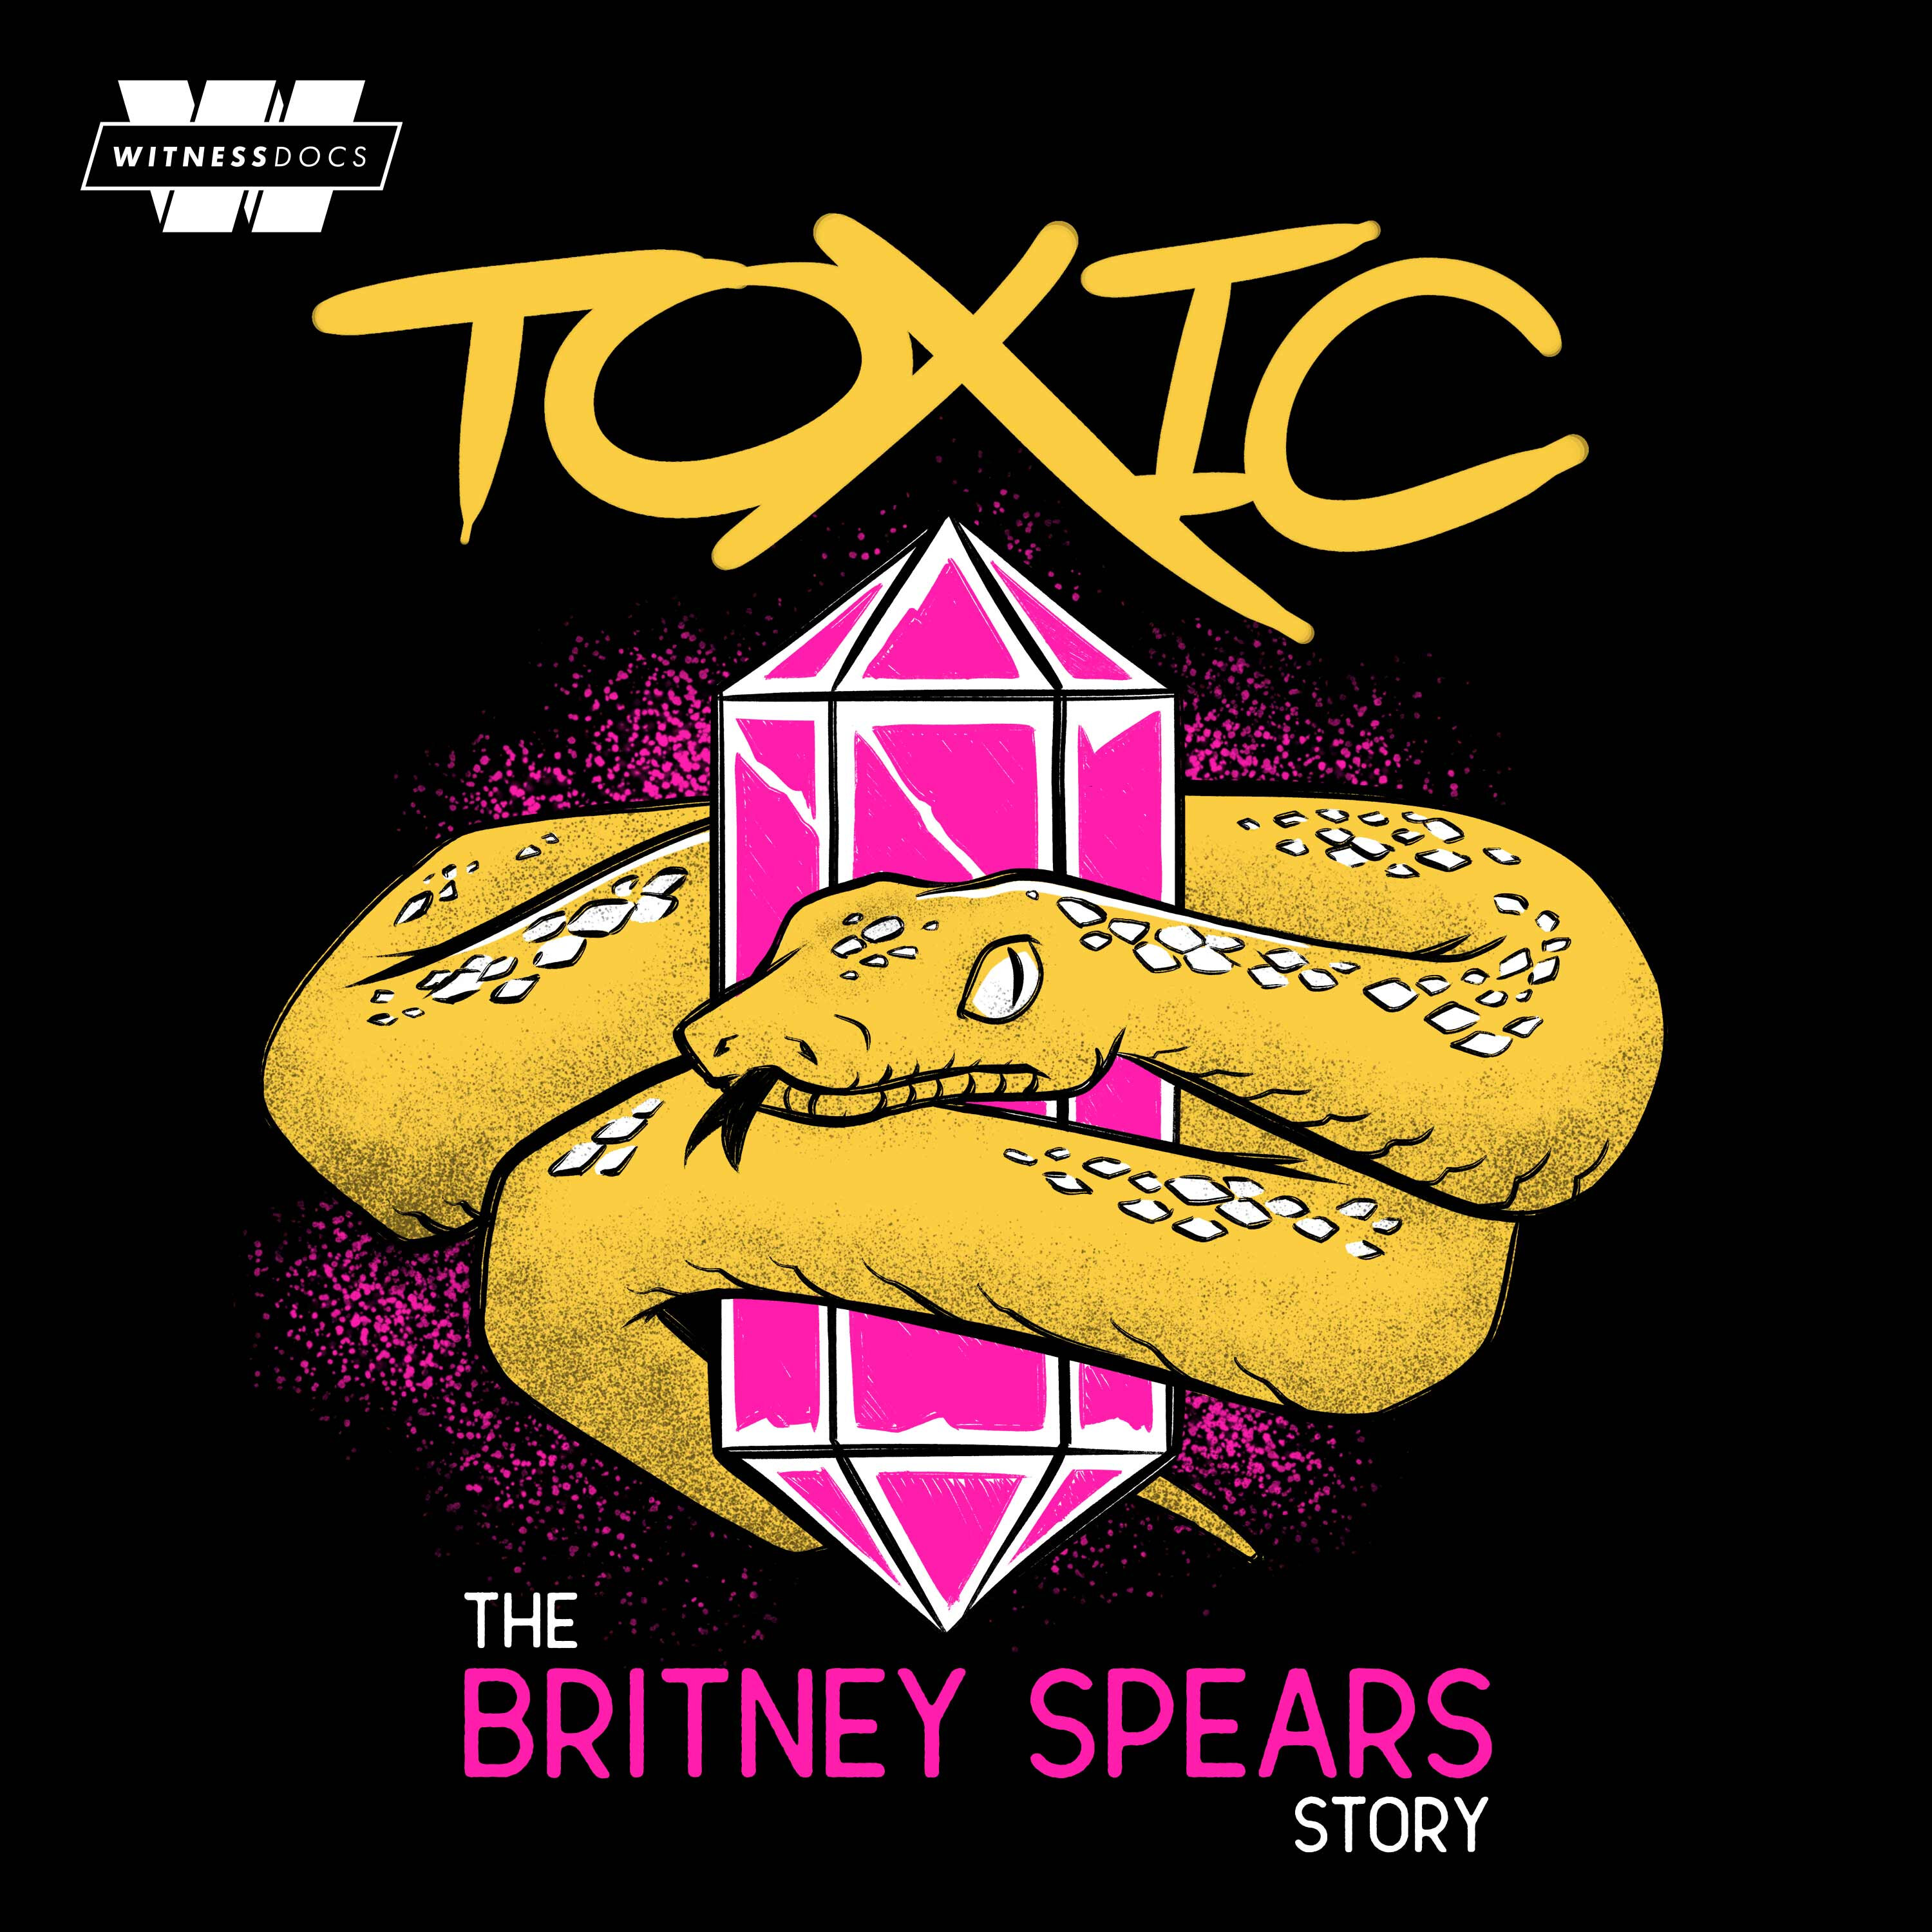 Toxic: The Britney Spears Story